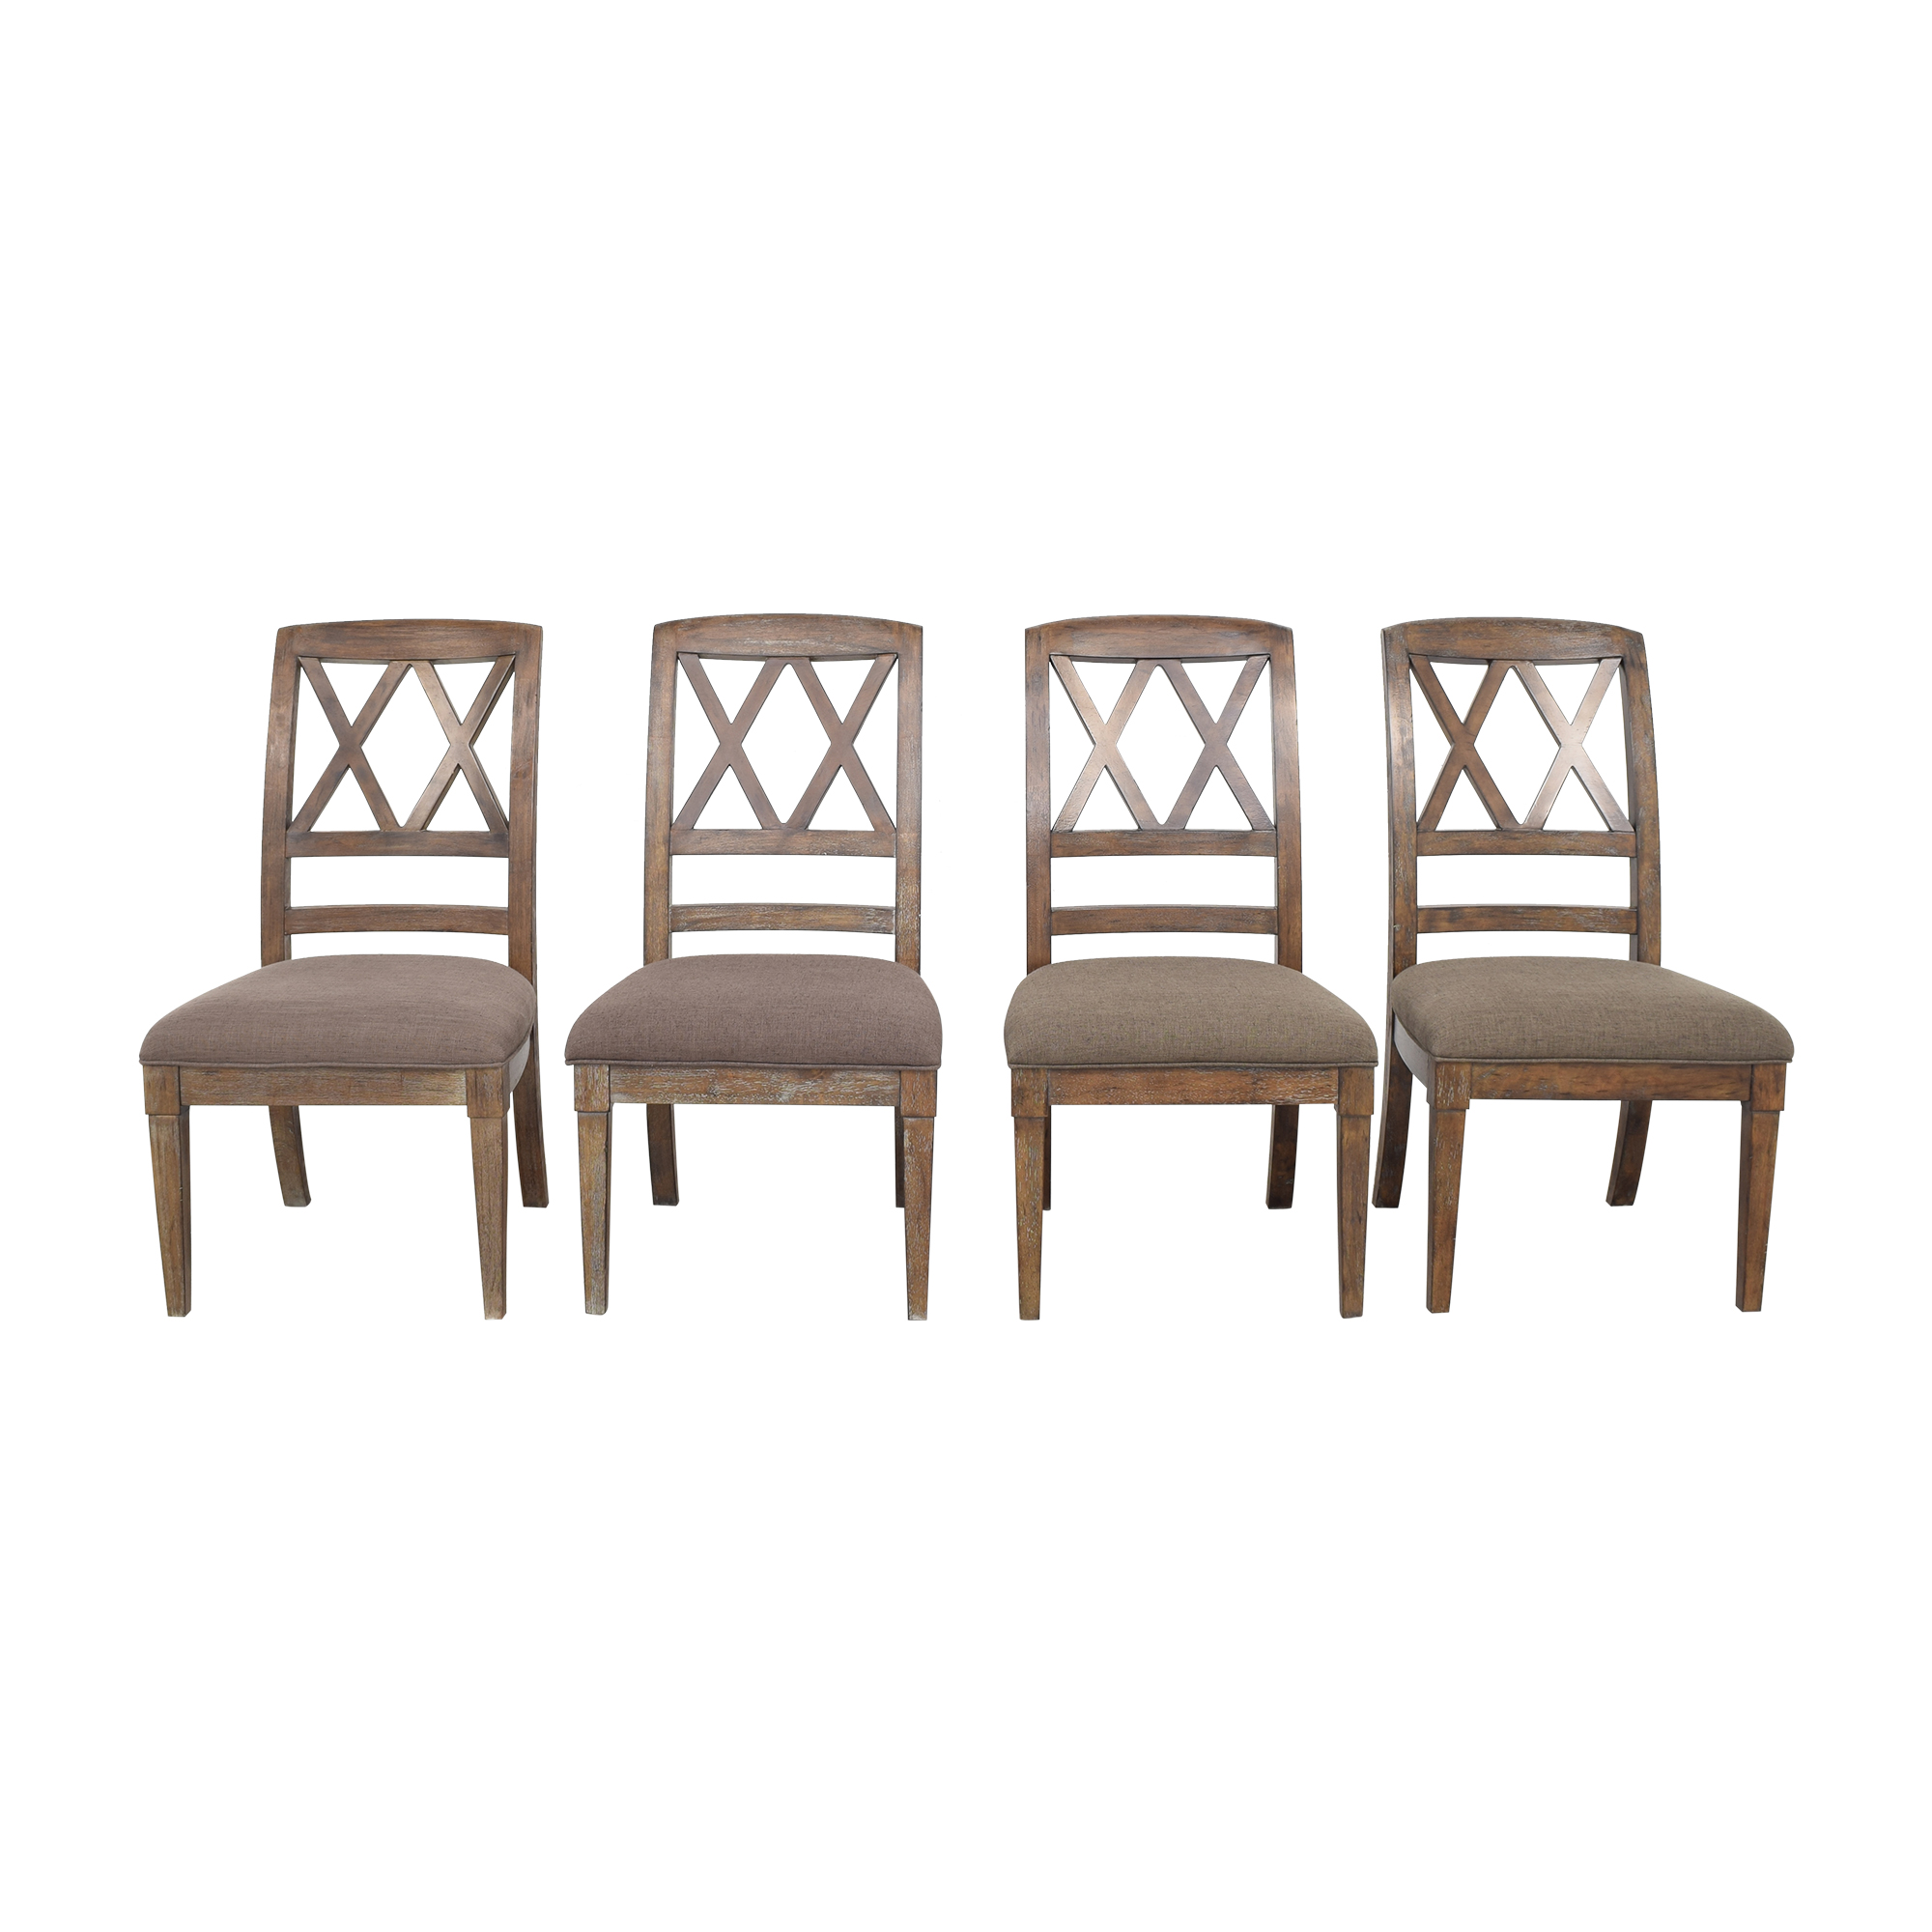 buy Bassett Furniture Bassett Furniture Trestle Dining Chairs online